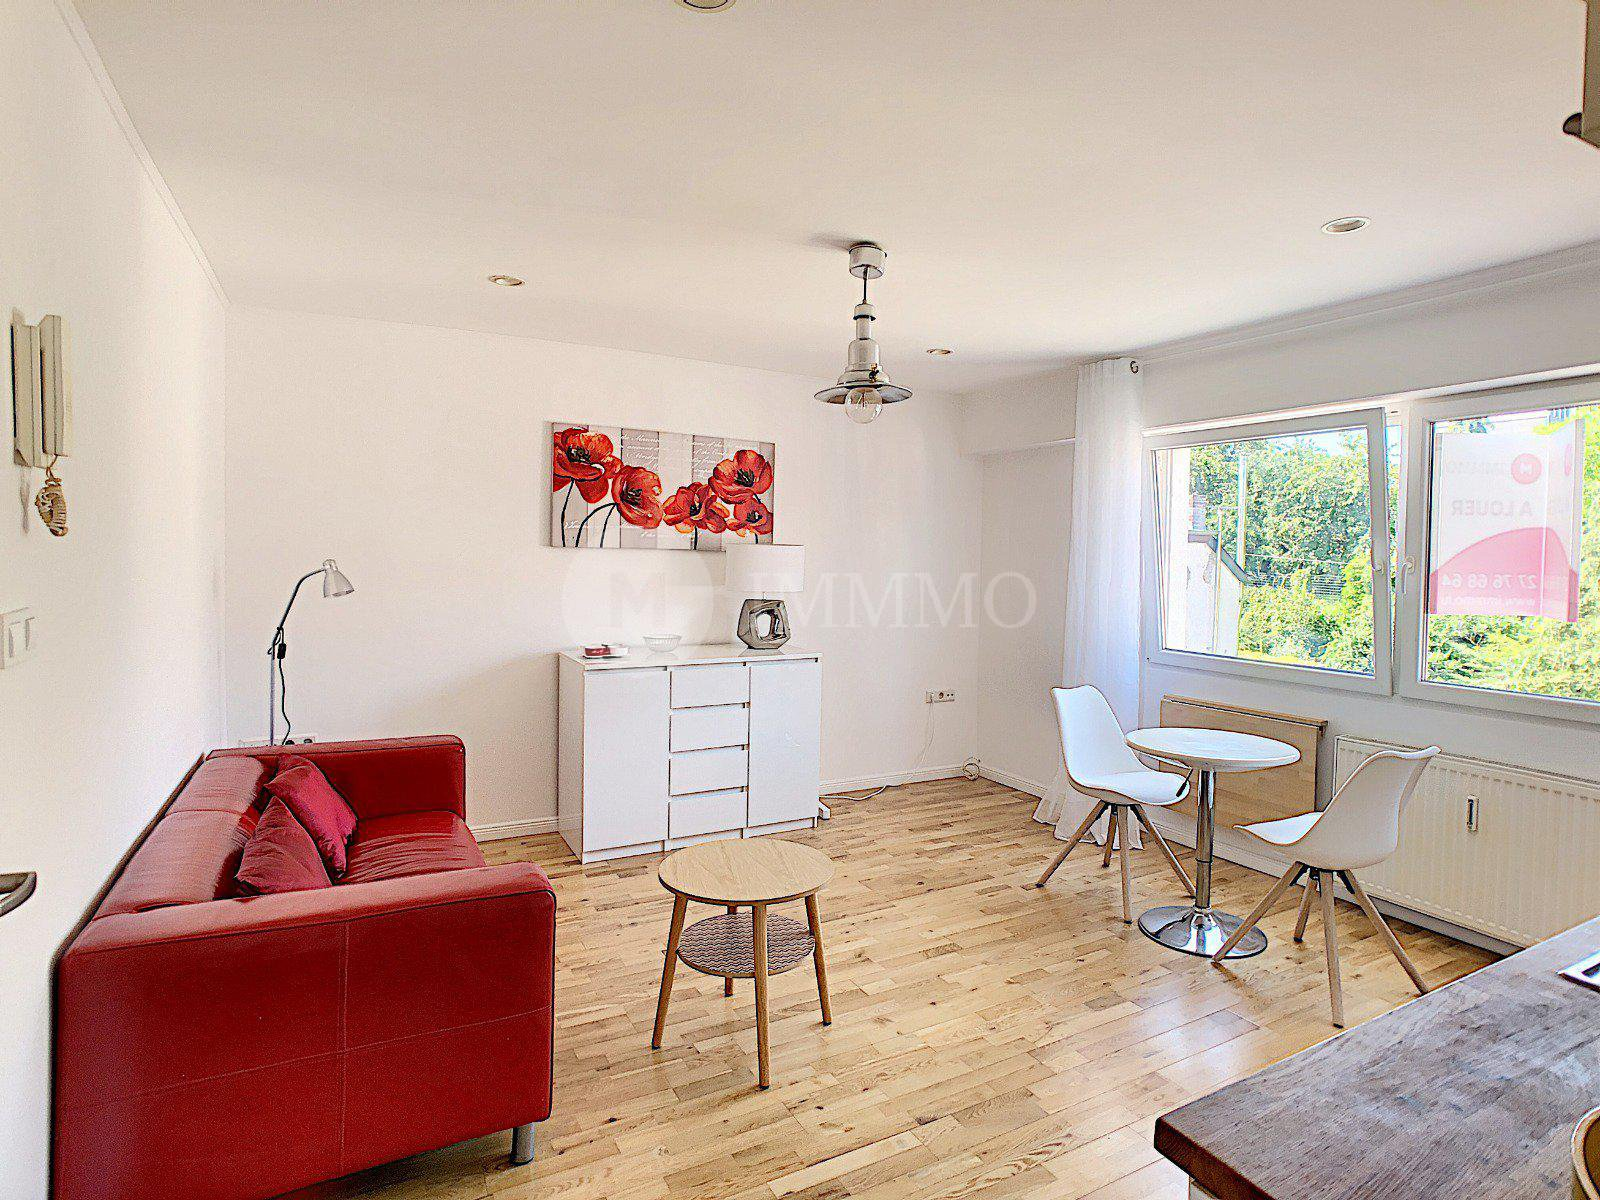 Apartment for rent in Luxembourg Hamm